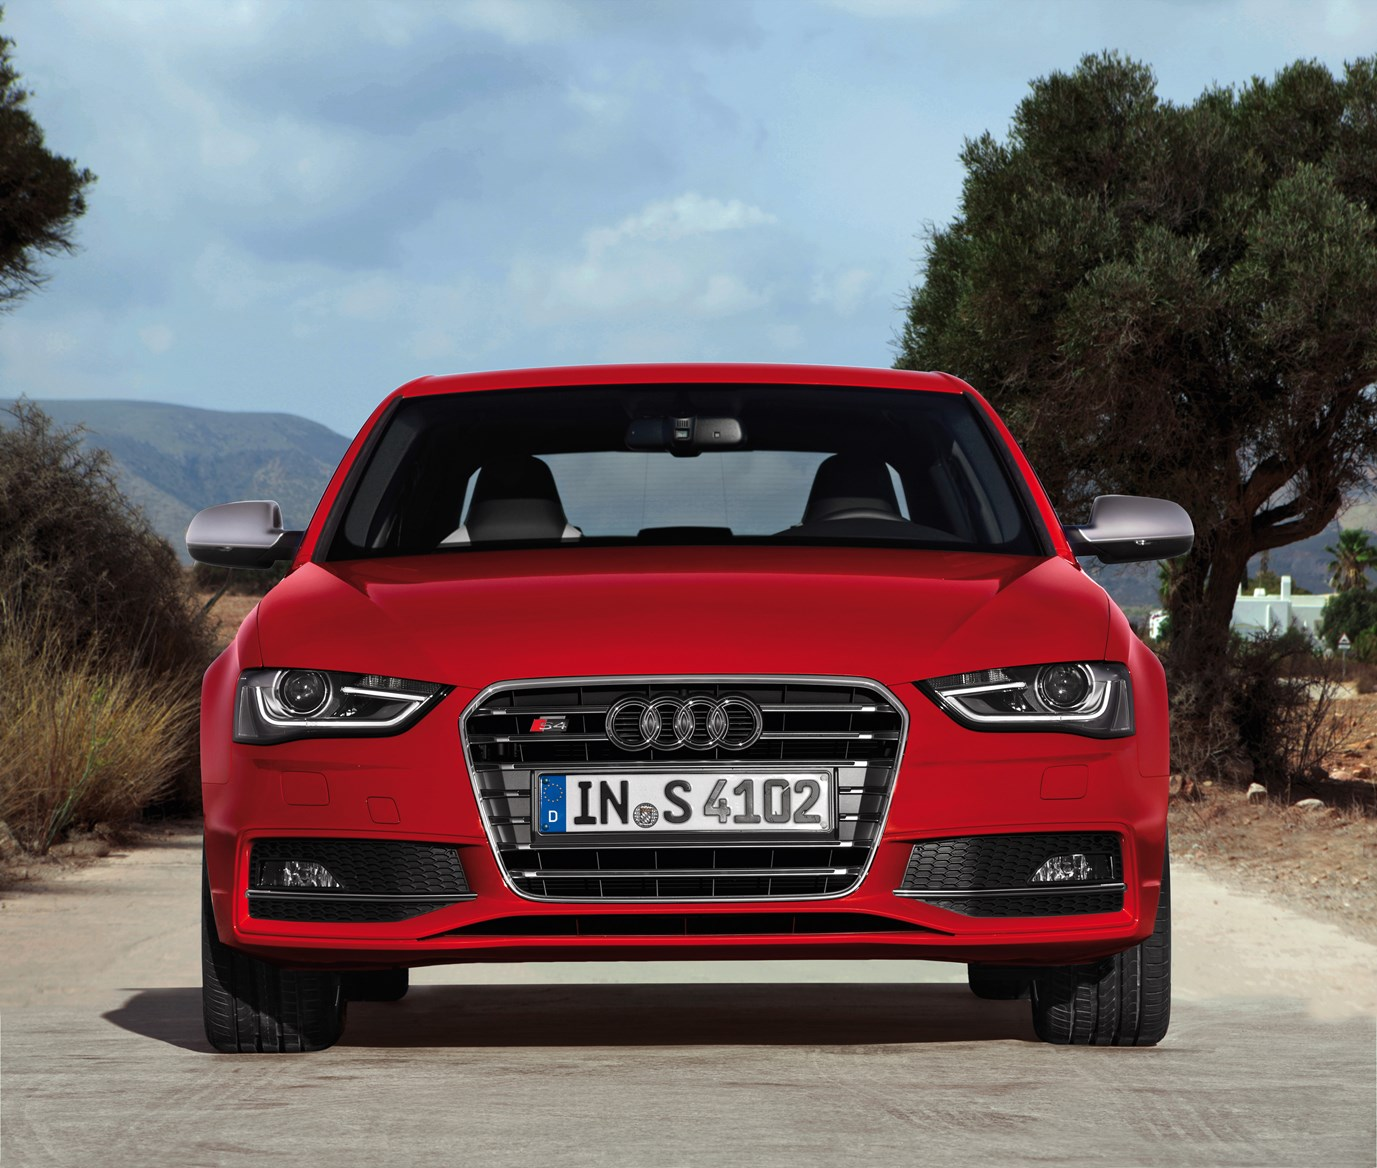 Used Audi A4 S4 (2009 - 2015) Review